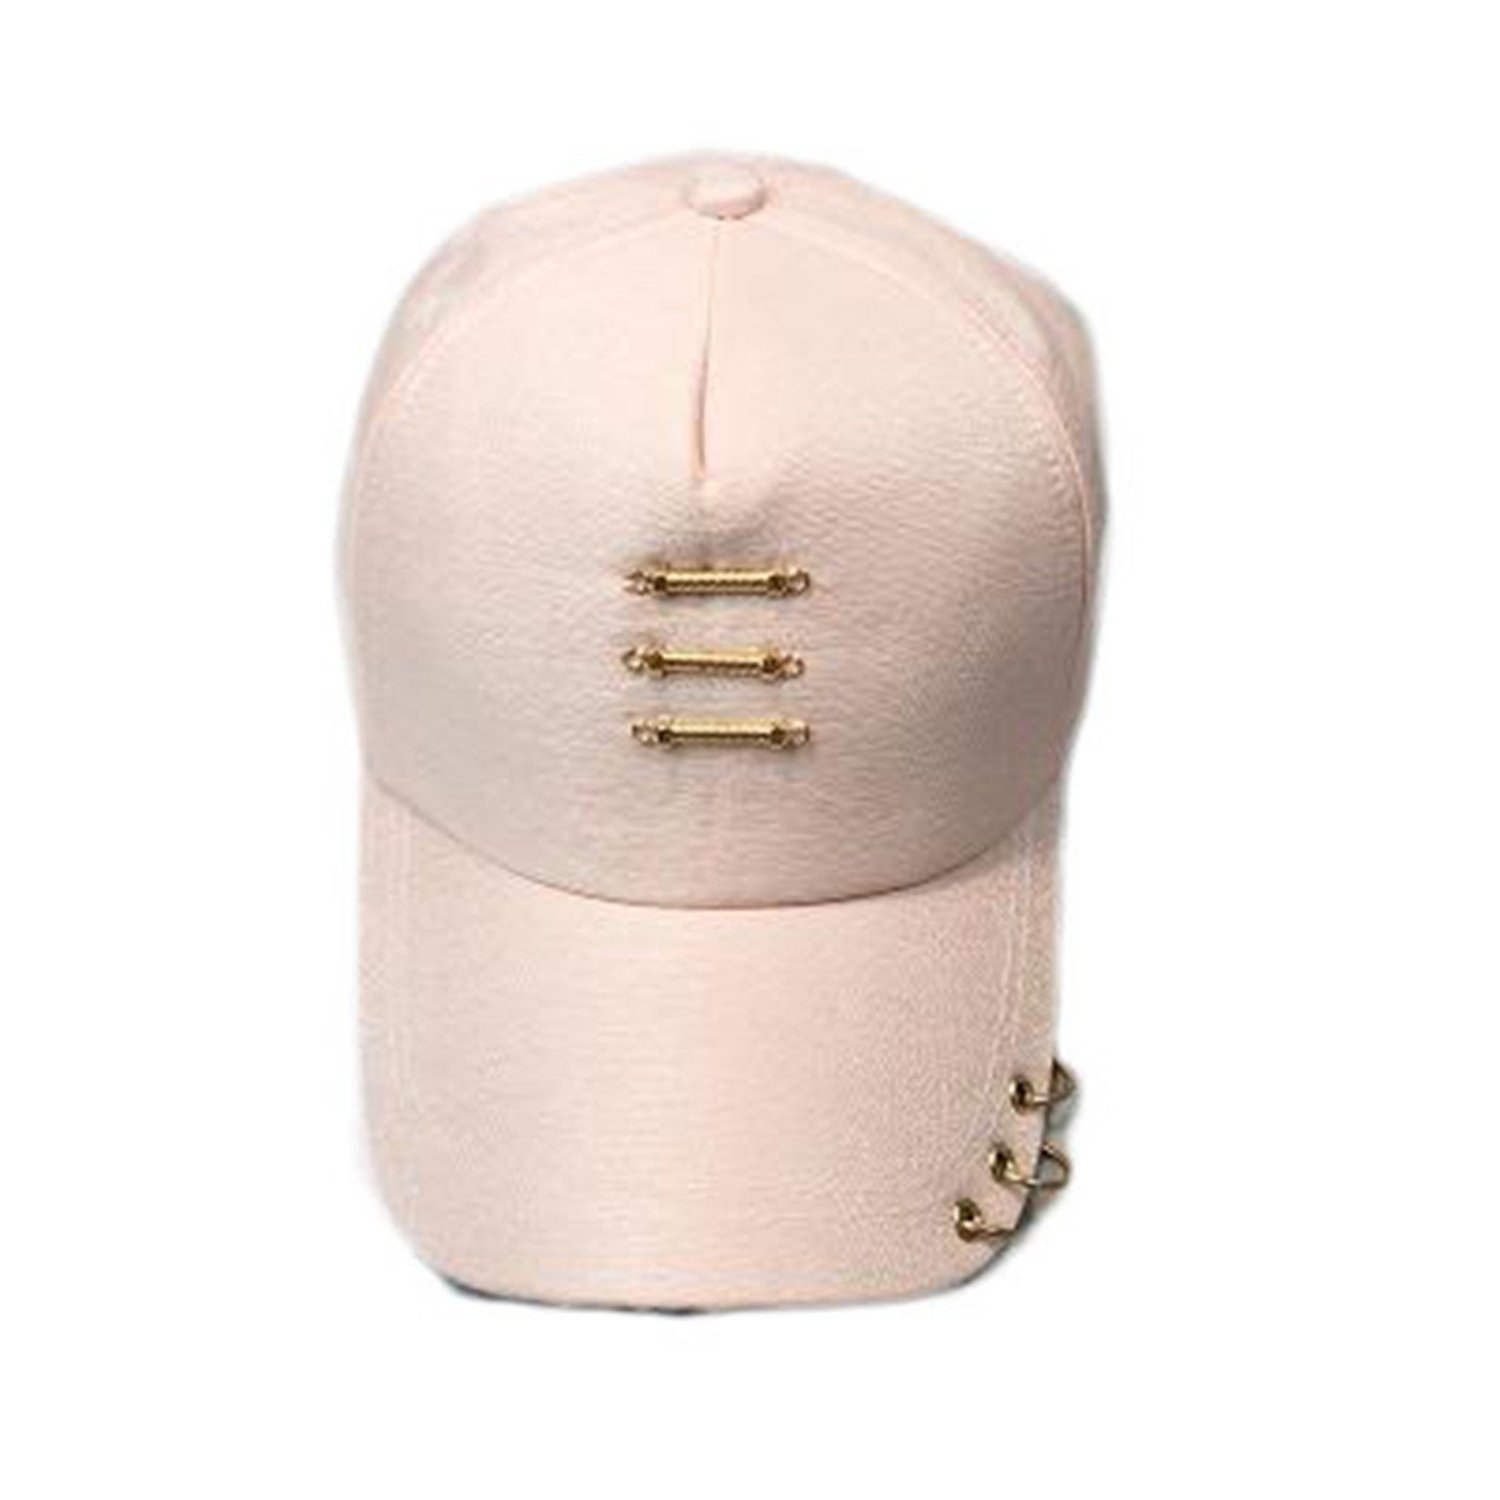 New Iron Ring Cap Women Baseball Cap with Rings Gold Color Hip Hop Hats for Women Men Dad Hat Kpop